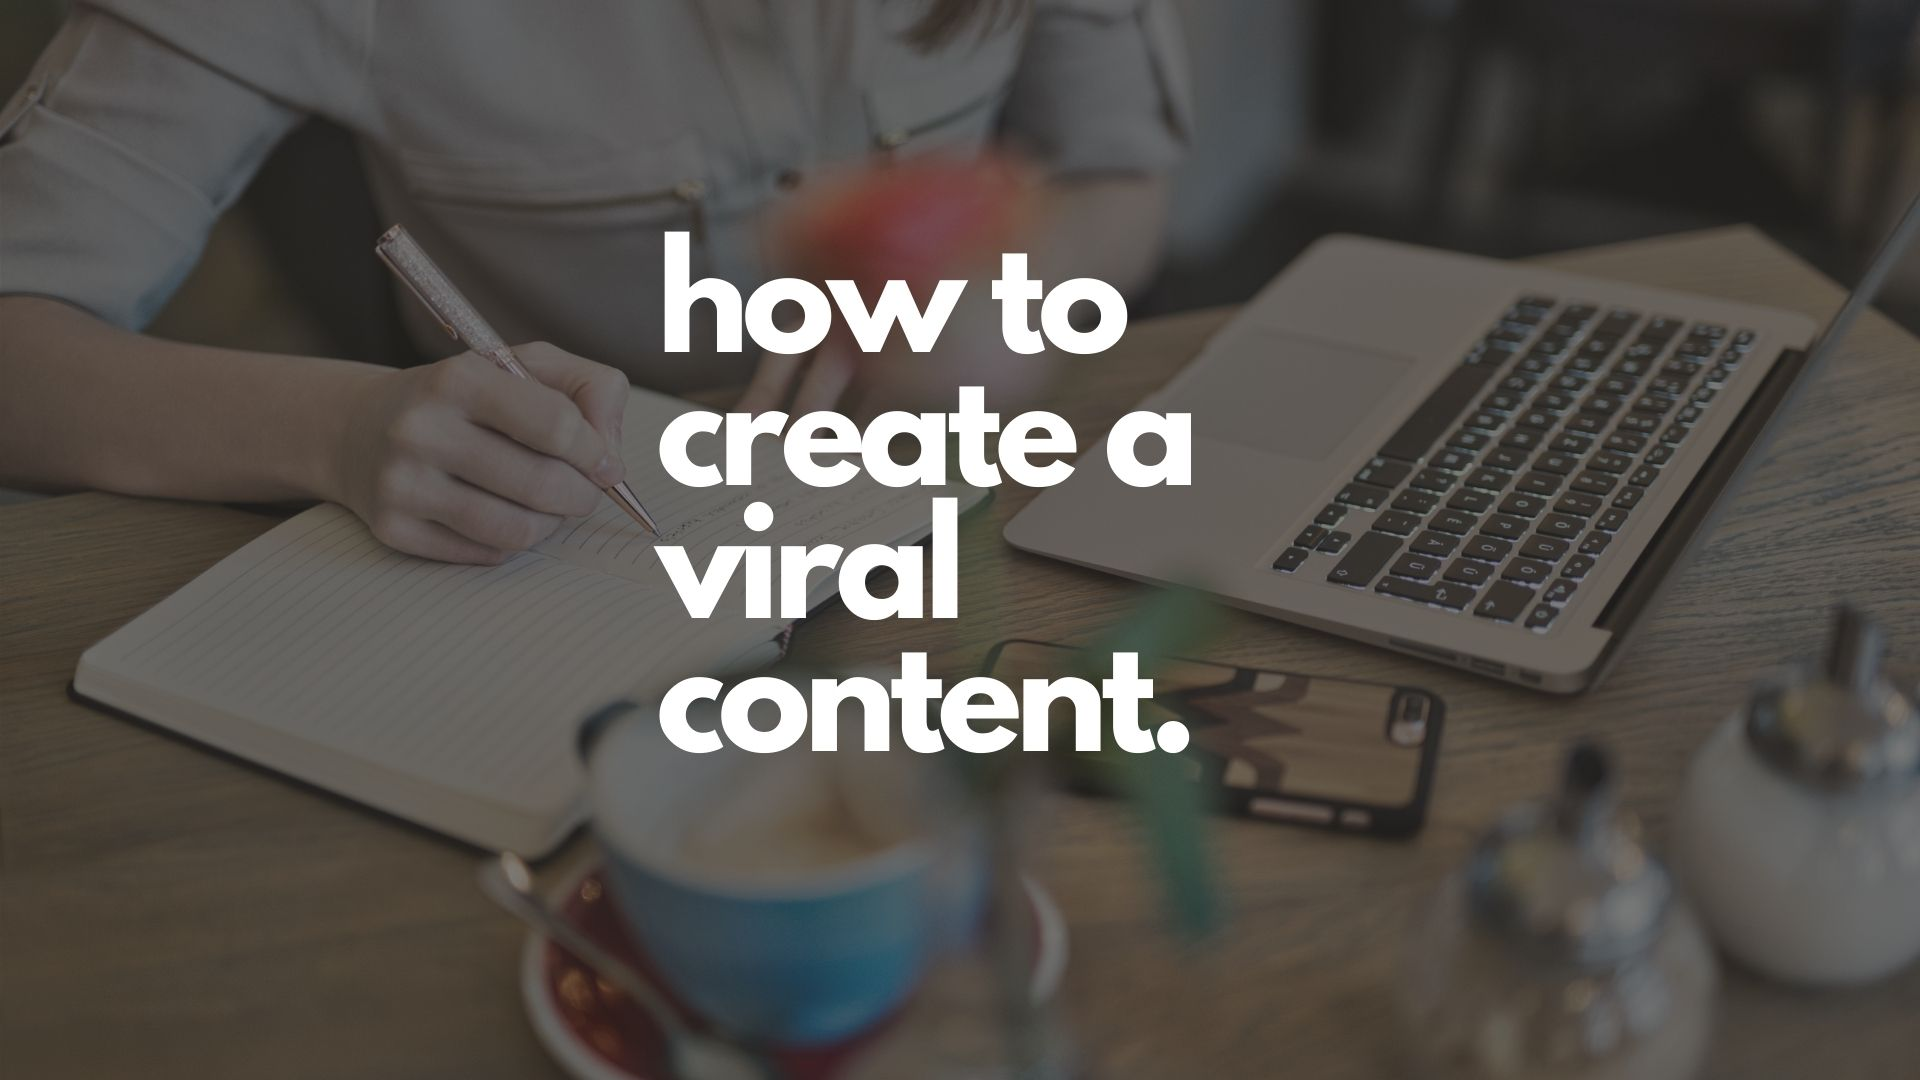 How To Create A Viral Content